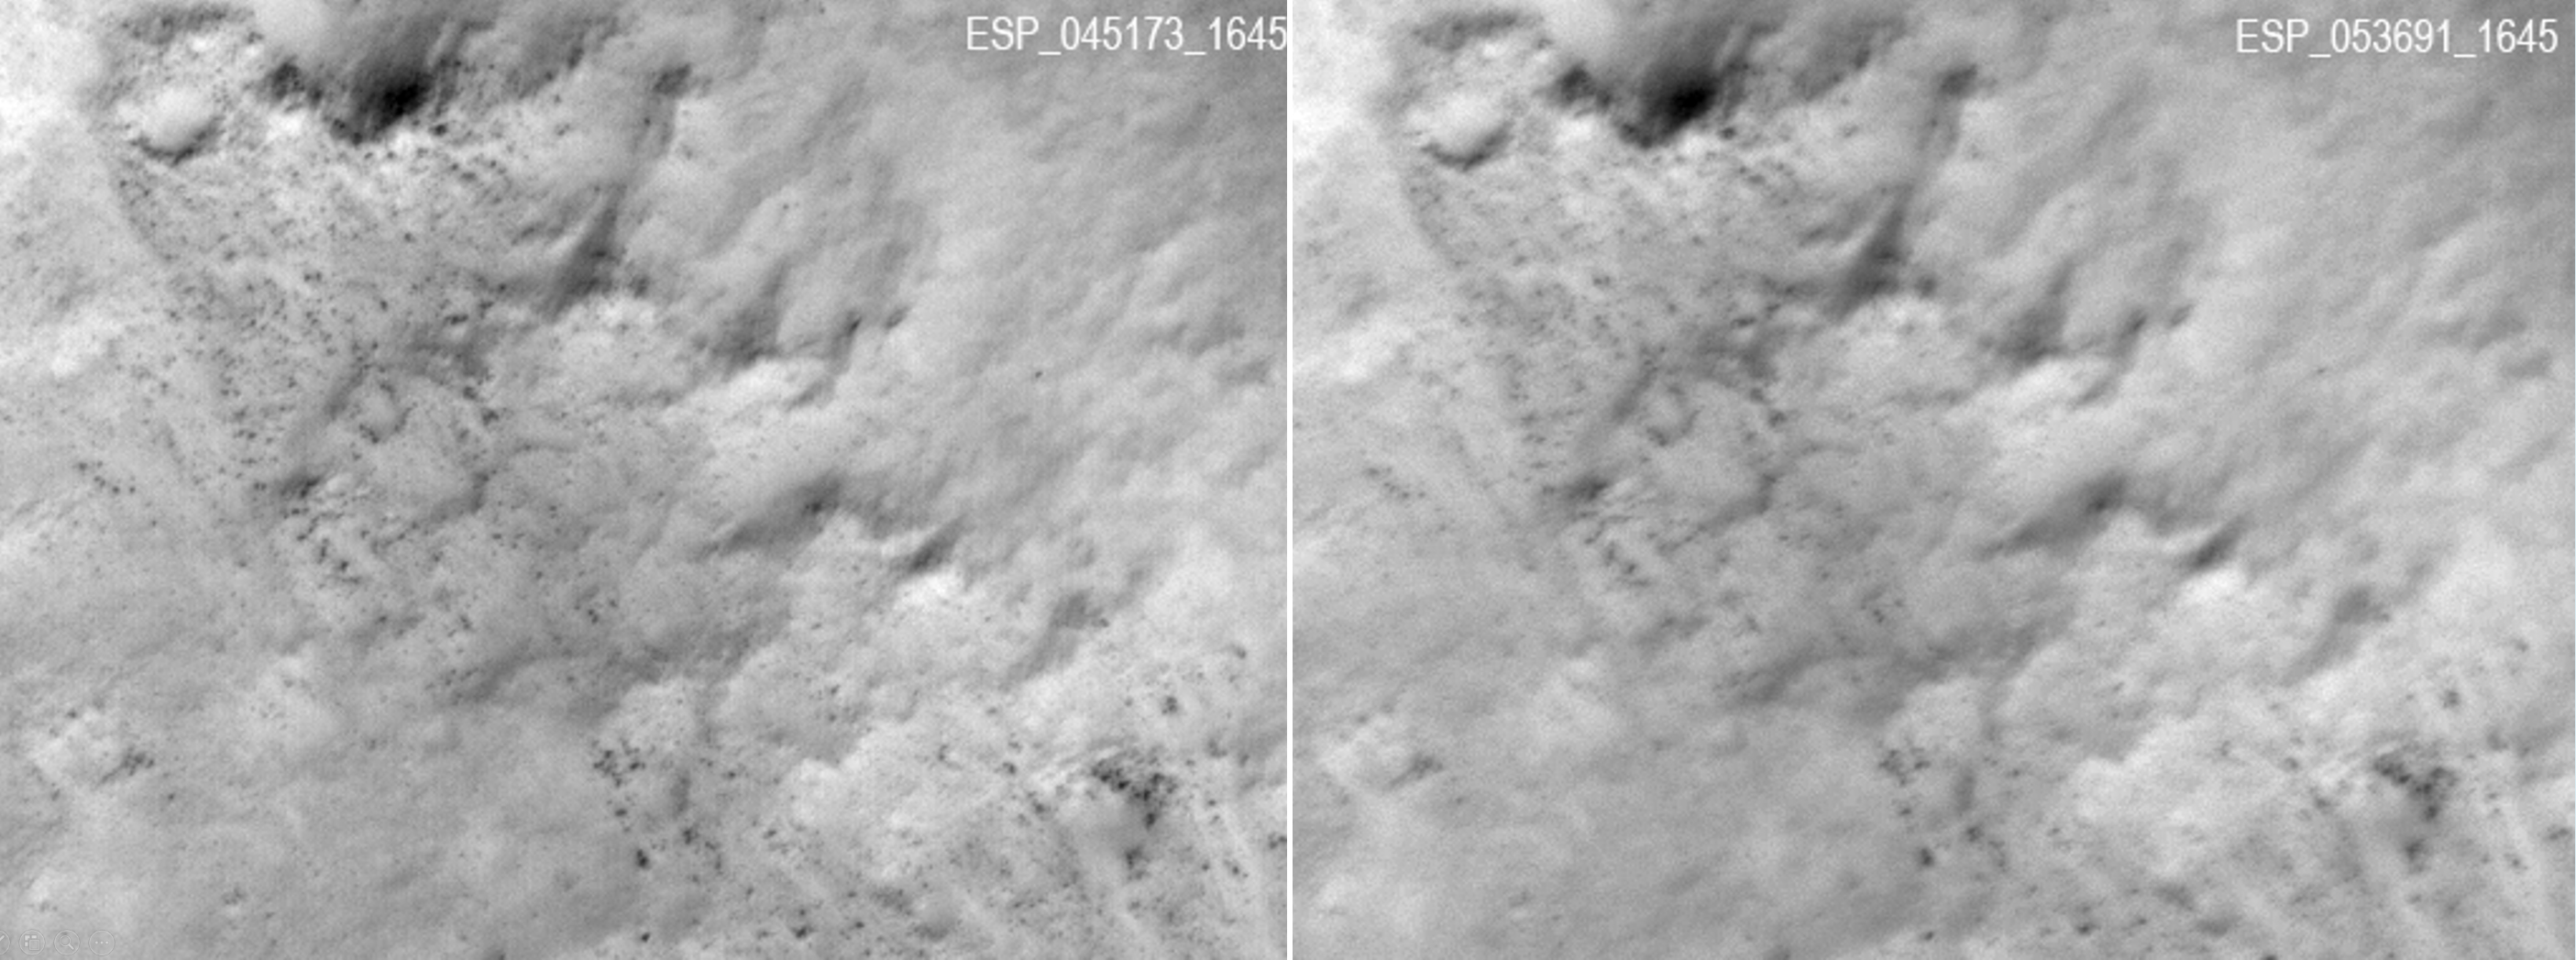 MRO images side by side